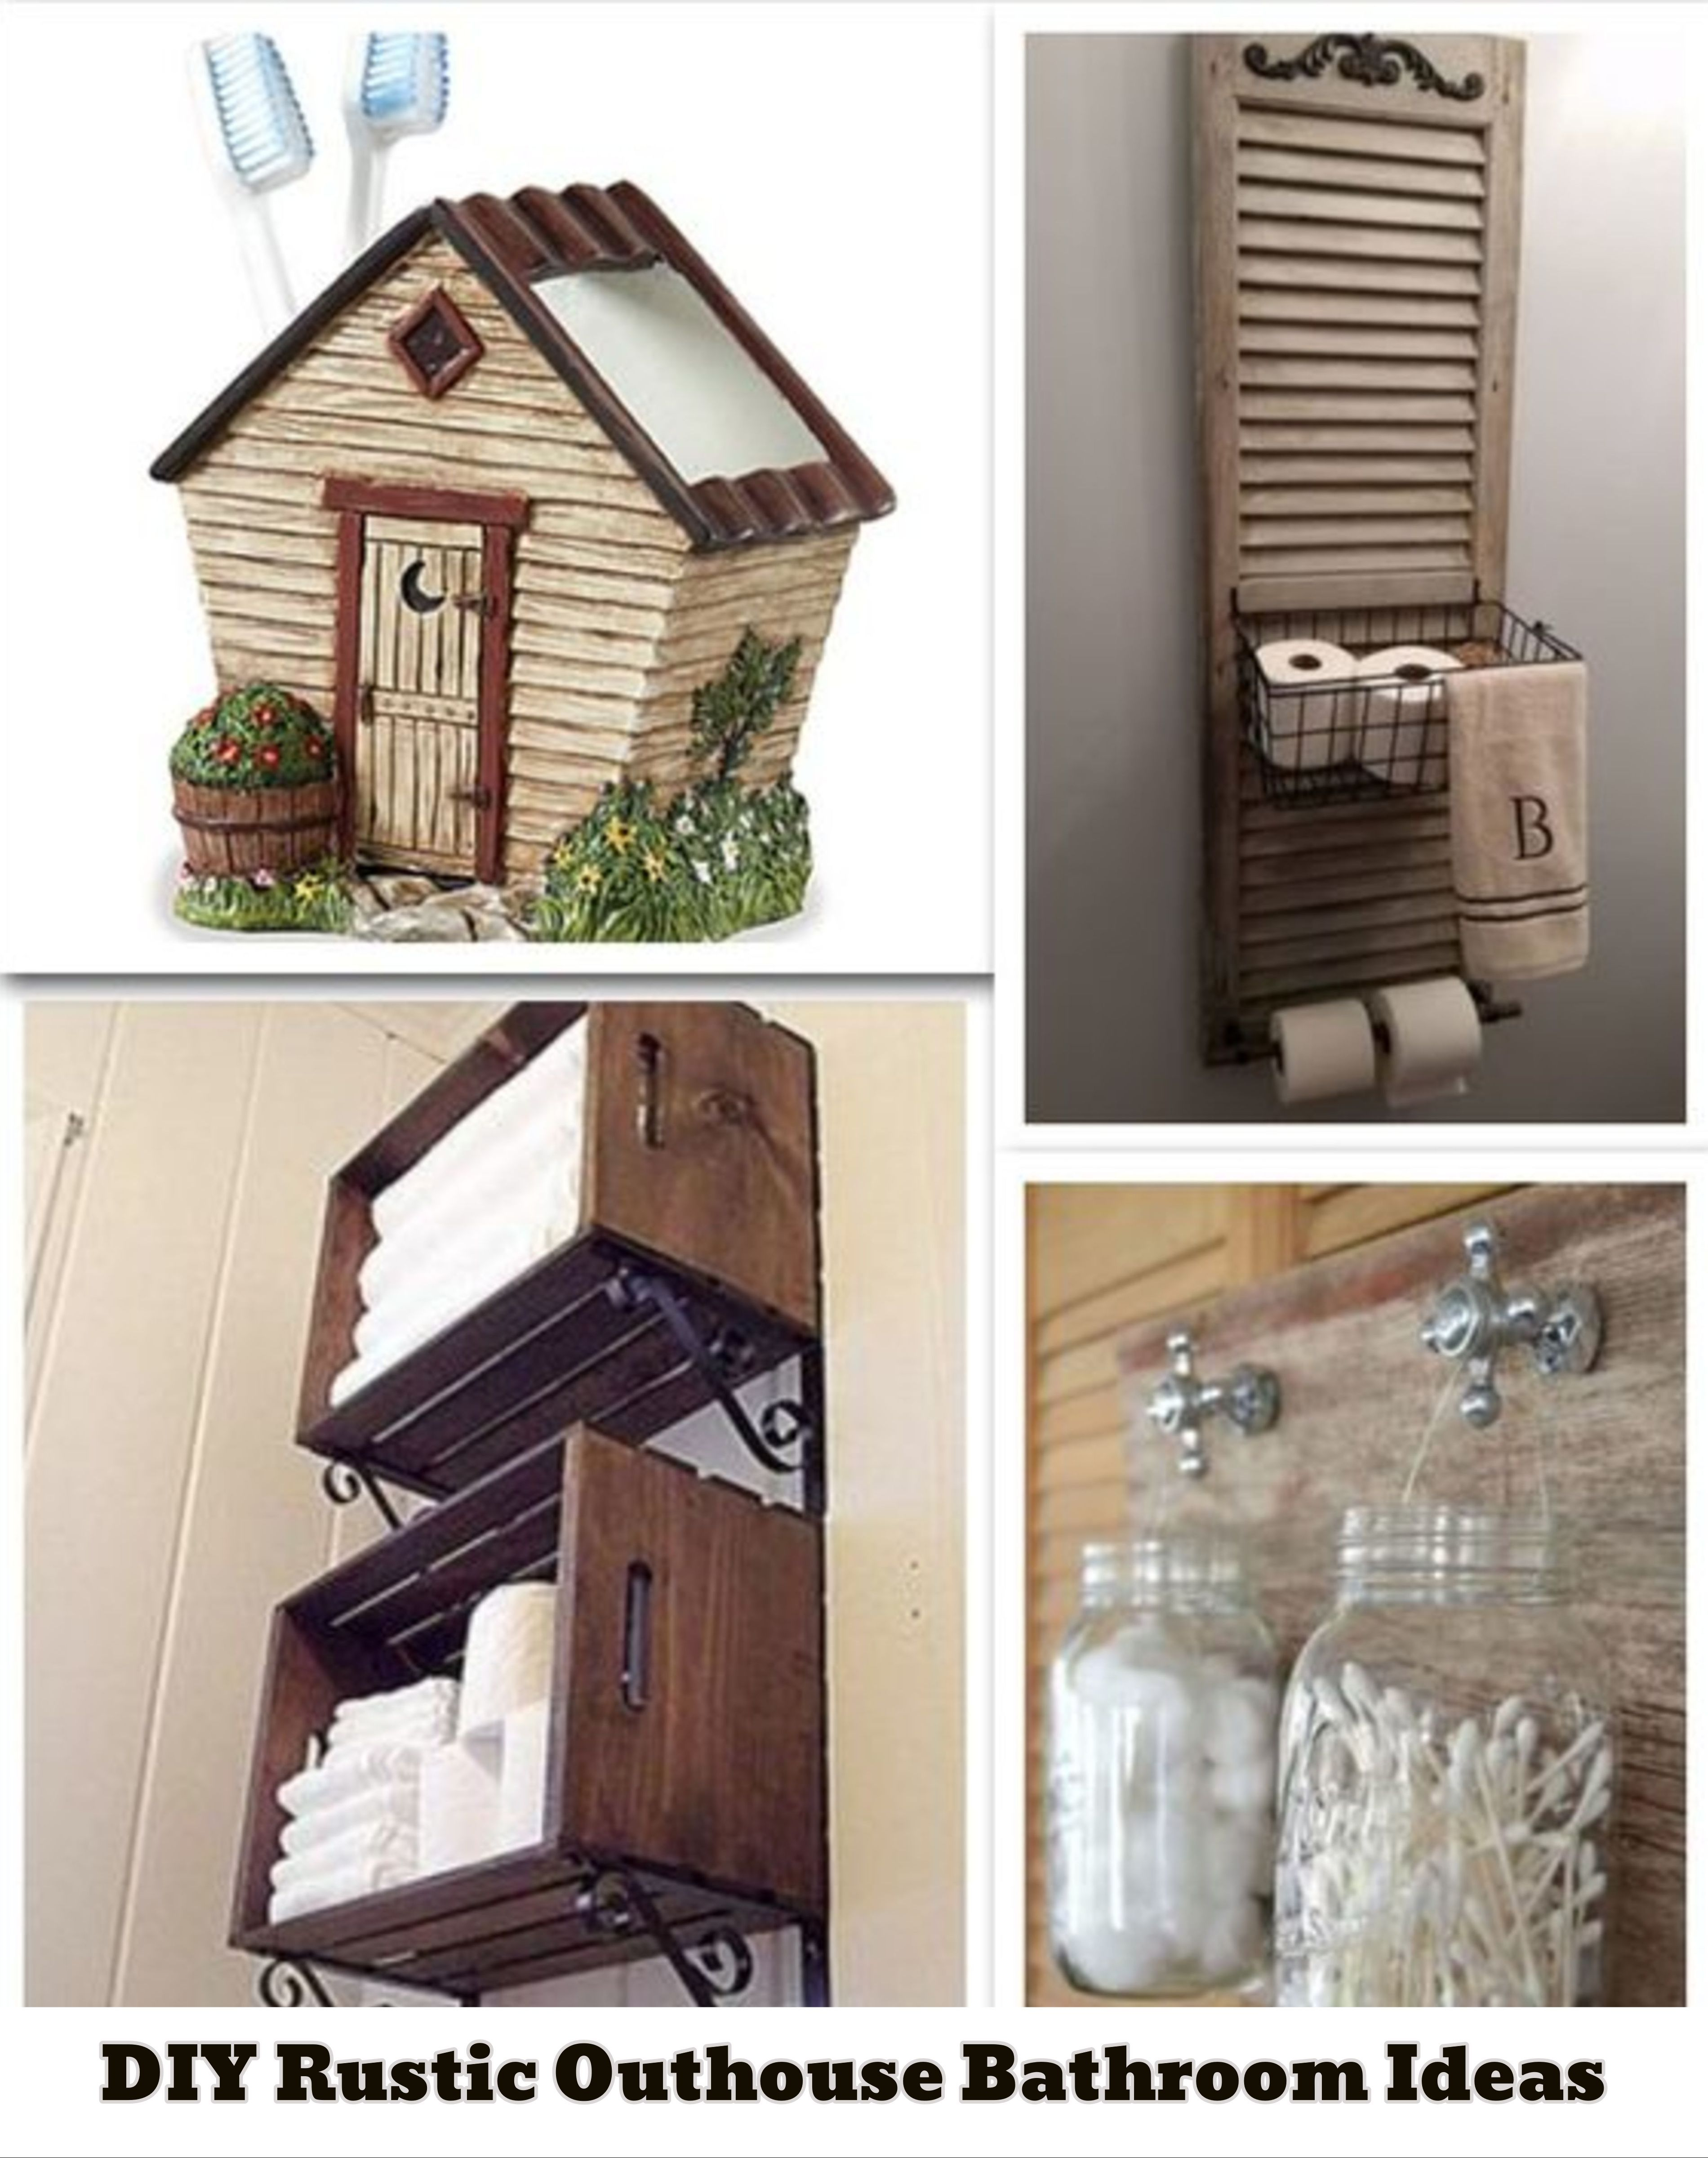 Country Outhouse Bathroom Decorating Ideas Outhouse Bathroom Decor Outhouse Decor Bathroom Decor